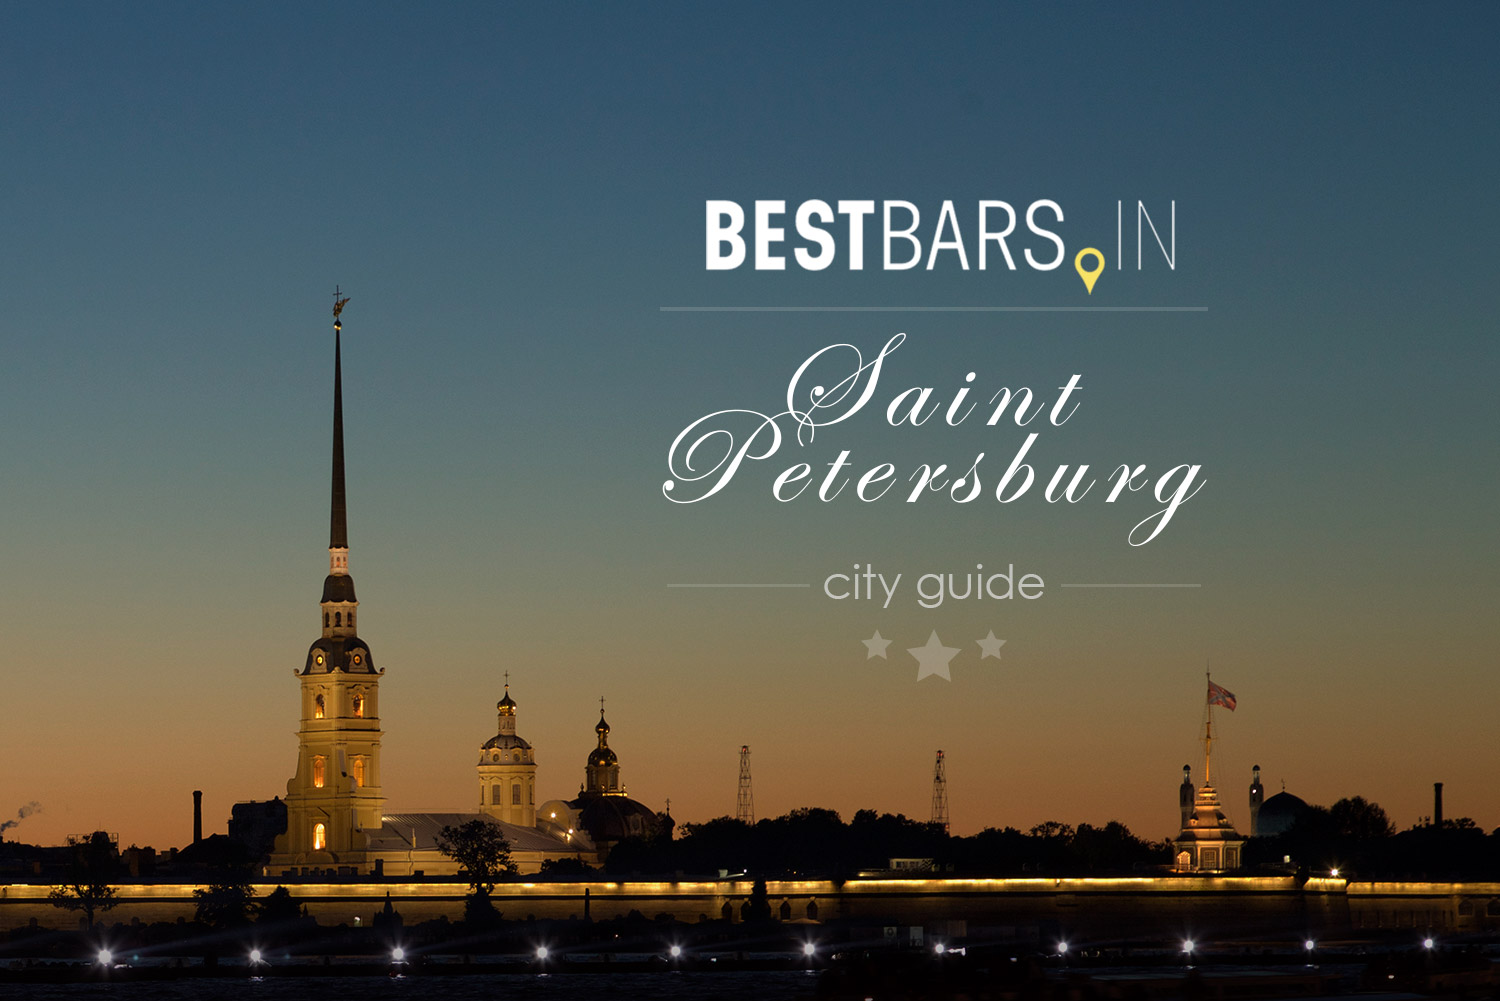 Saint Petersburg City guide